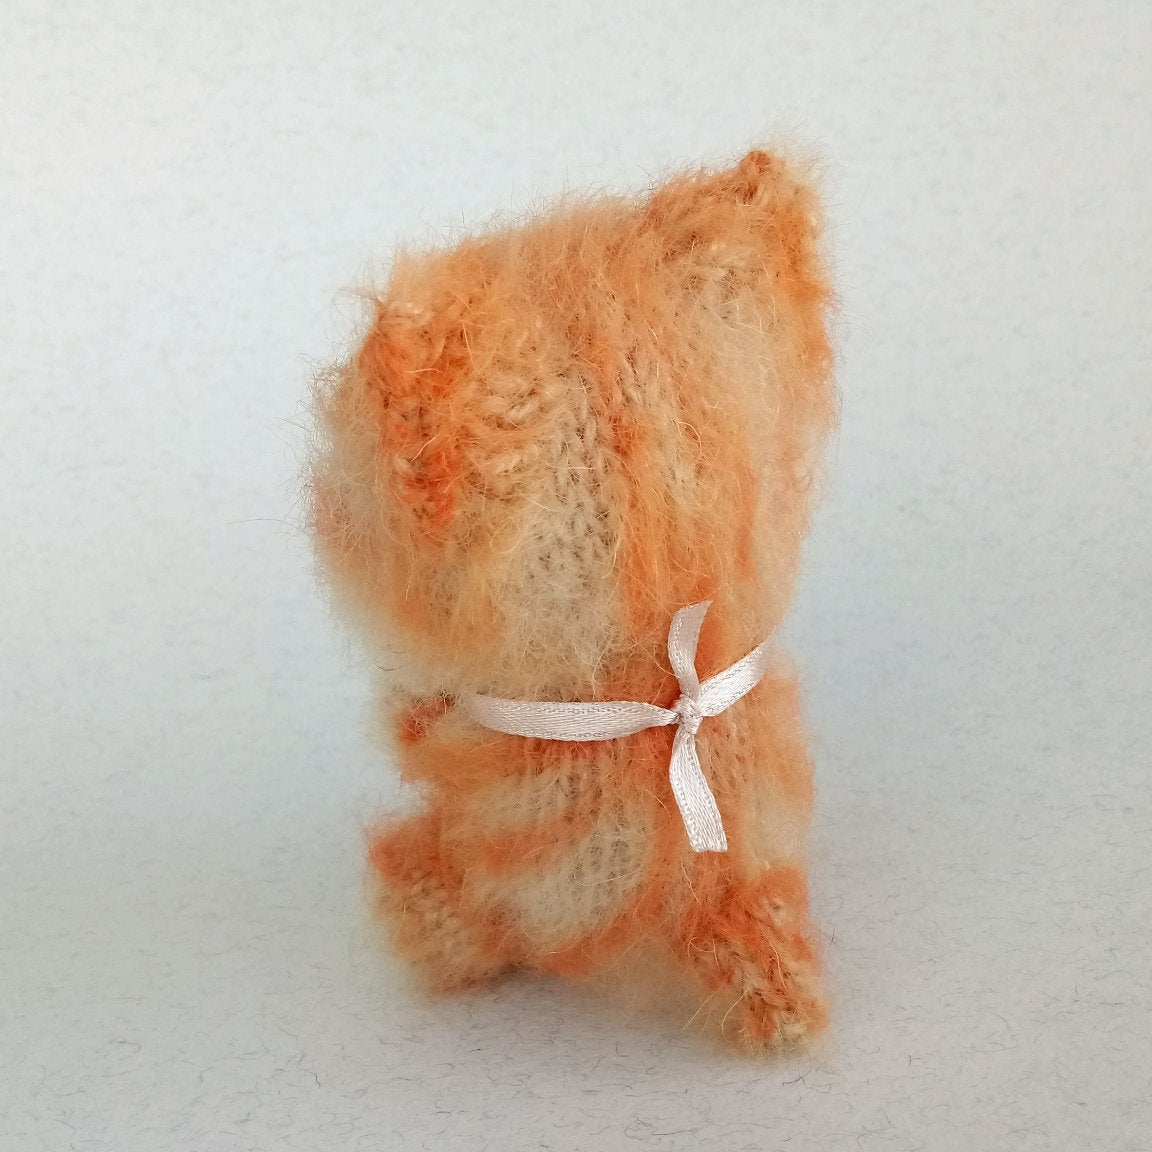 Image of Cat Lover Toy, Cute Plush Cat, Red Cat Knit Toy, Stuffed Kitty Cat, Kitty Stuffed Animal